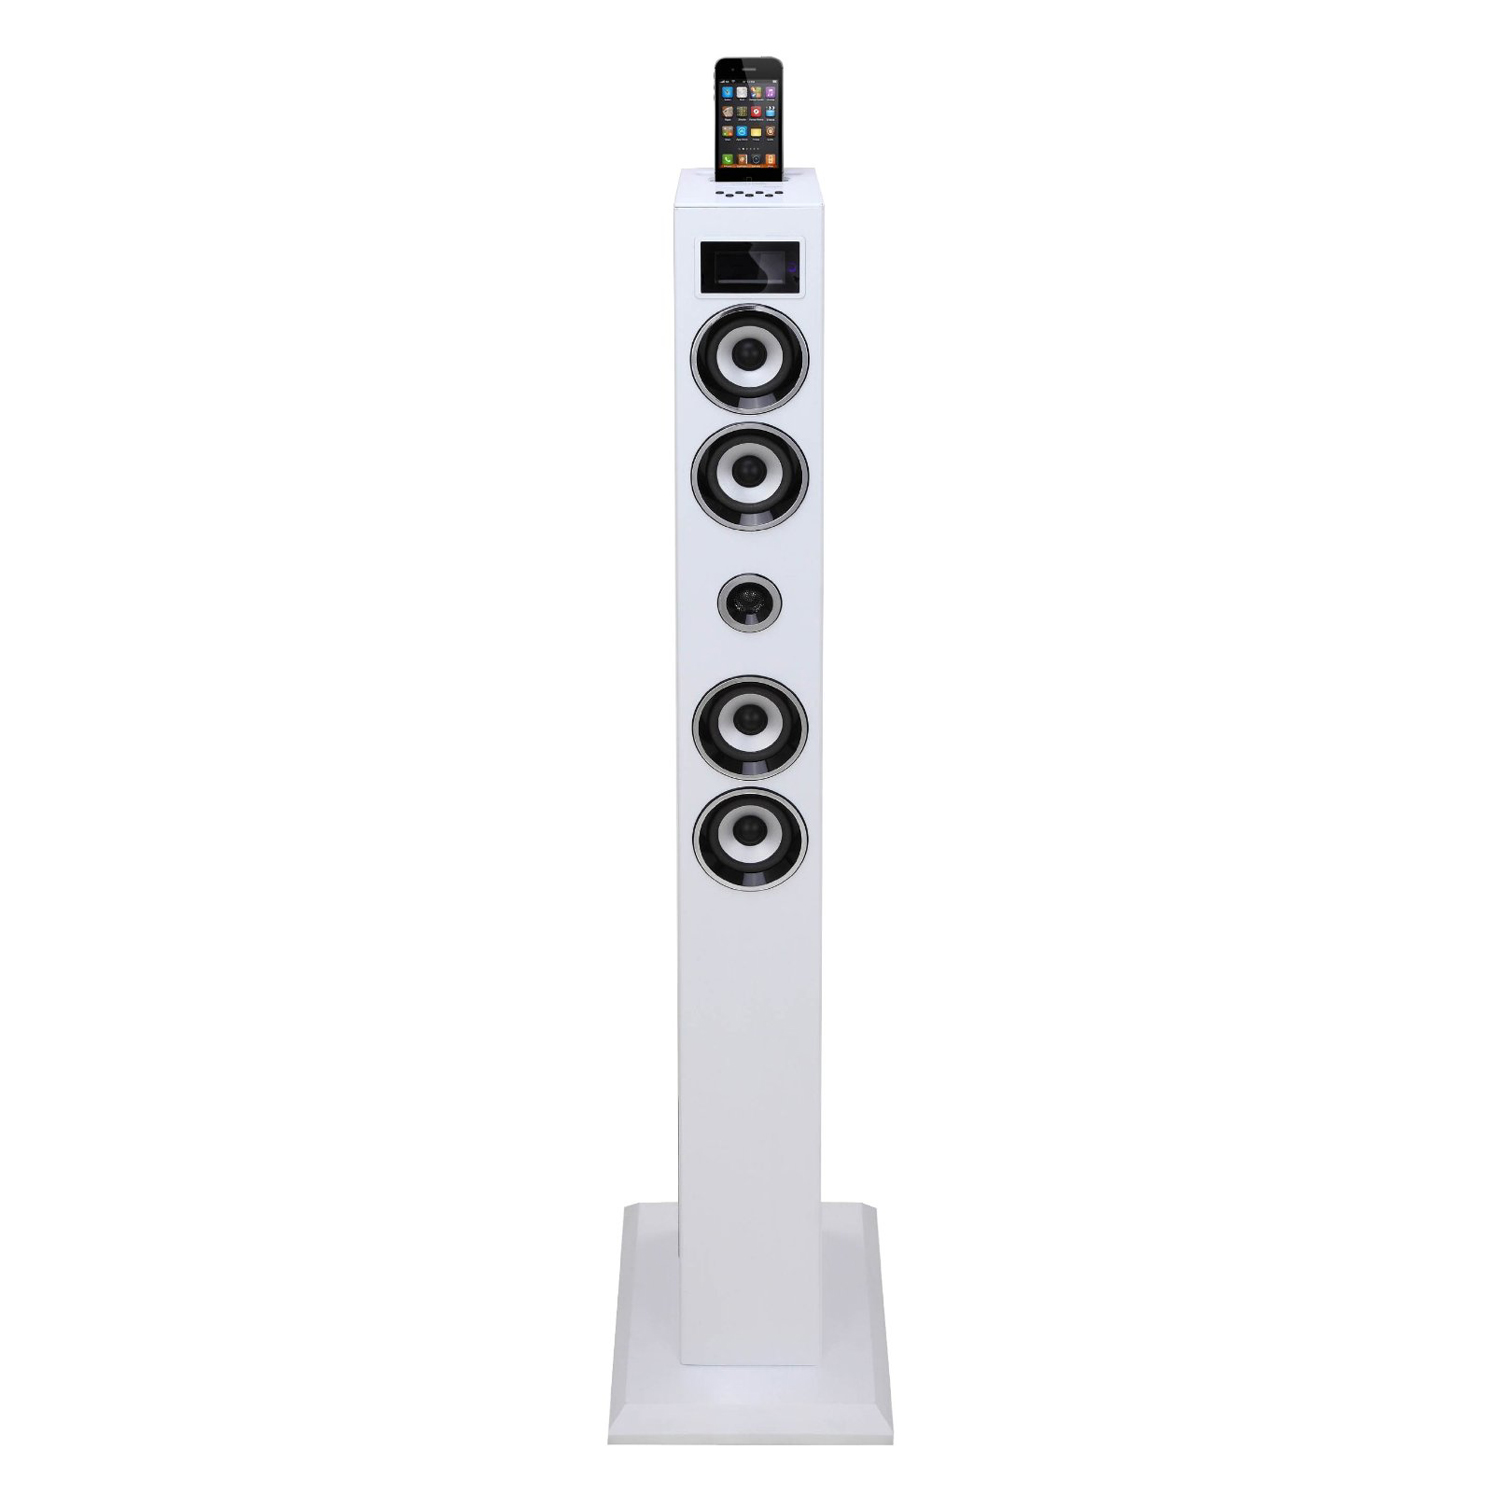 soundvision sv t04 bt blanc dock enceinte bluetooth soundvision sur ldlc. Black Bedroom Furniture Sets. Home Design Ideas